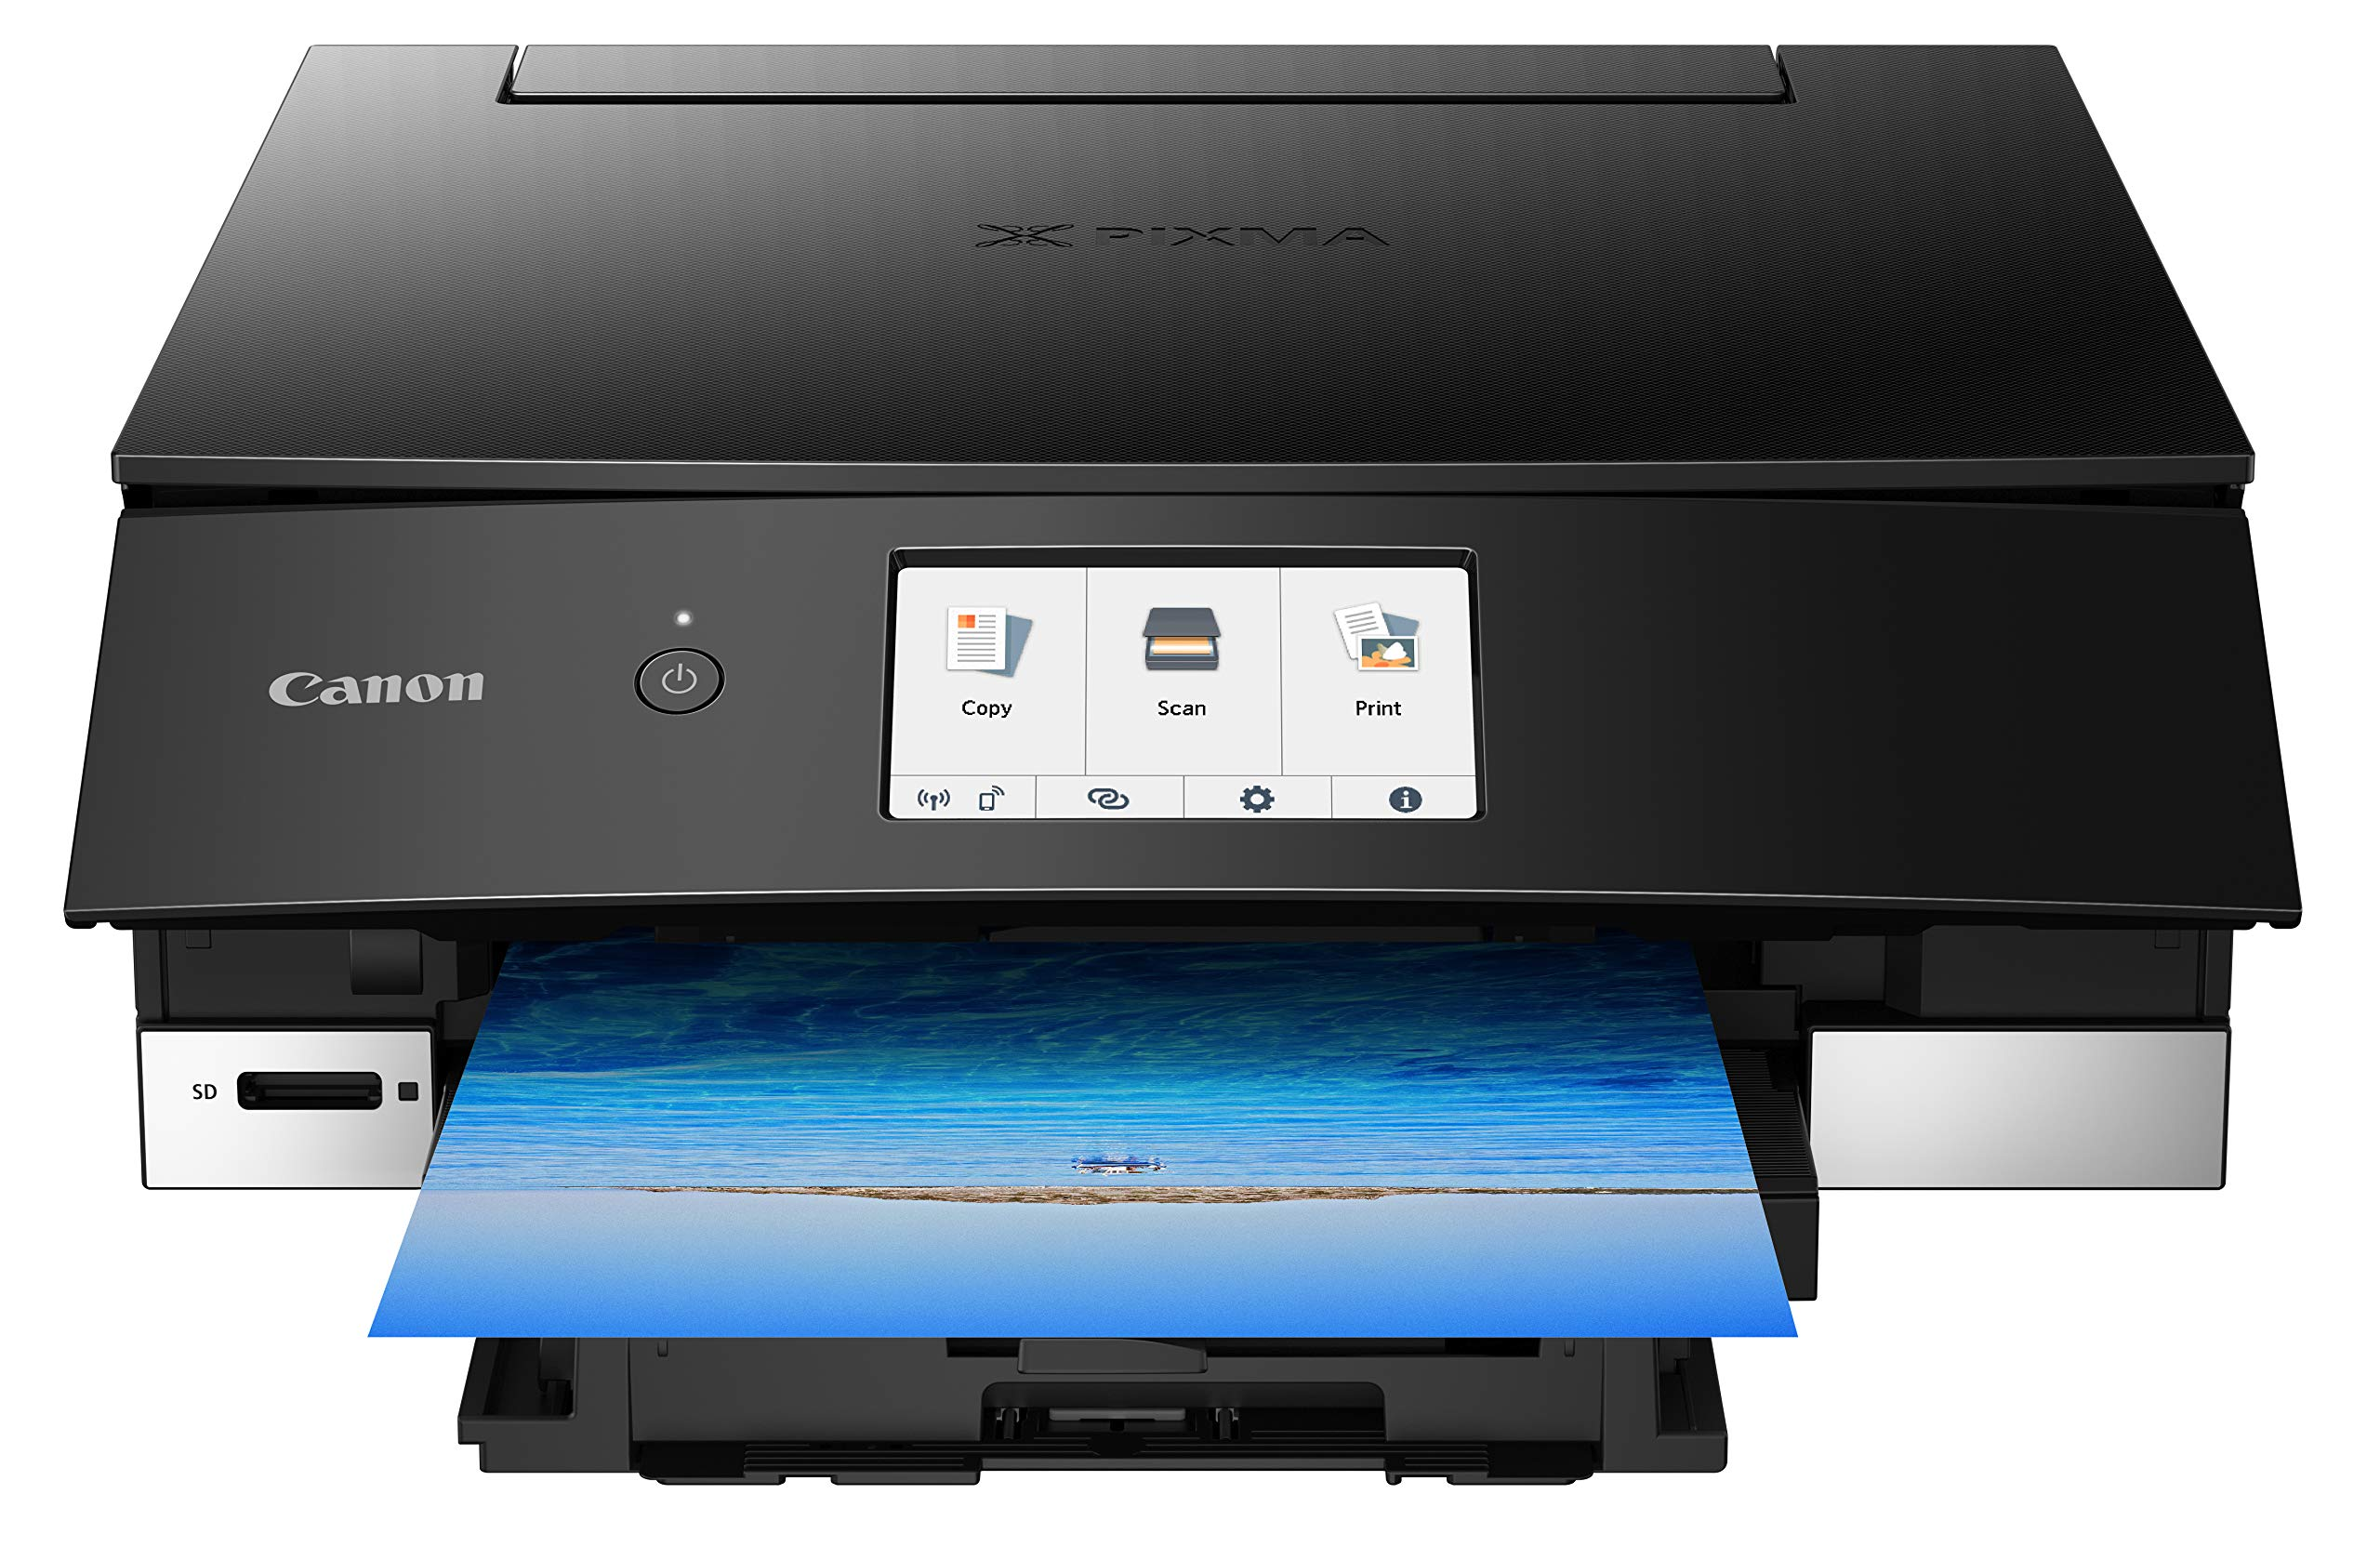 Canon TS8220 Wireless All in One Photo Printer with Scannier and Copier, Mobile Printing, Black by Canon (Image #1)